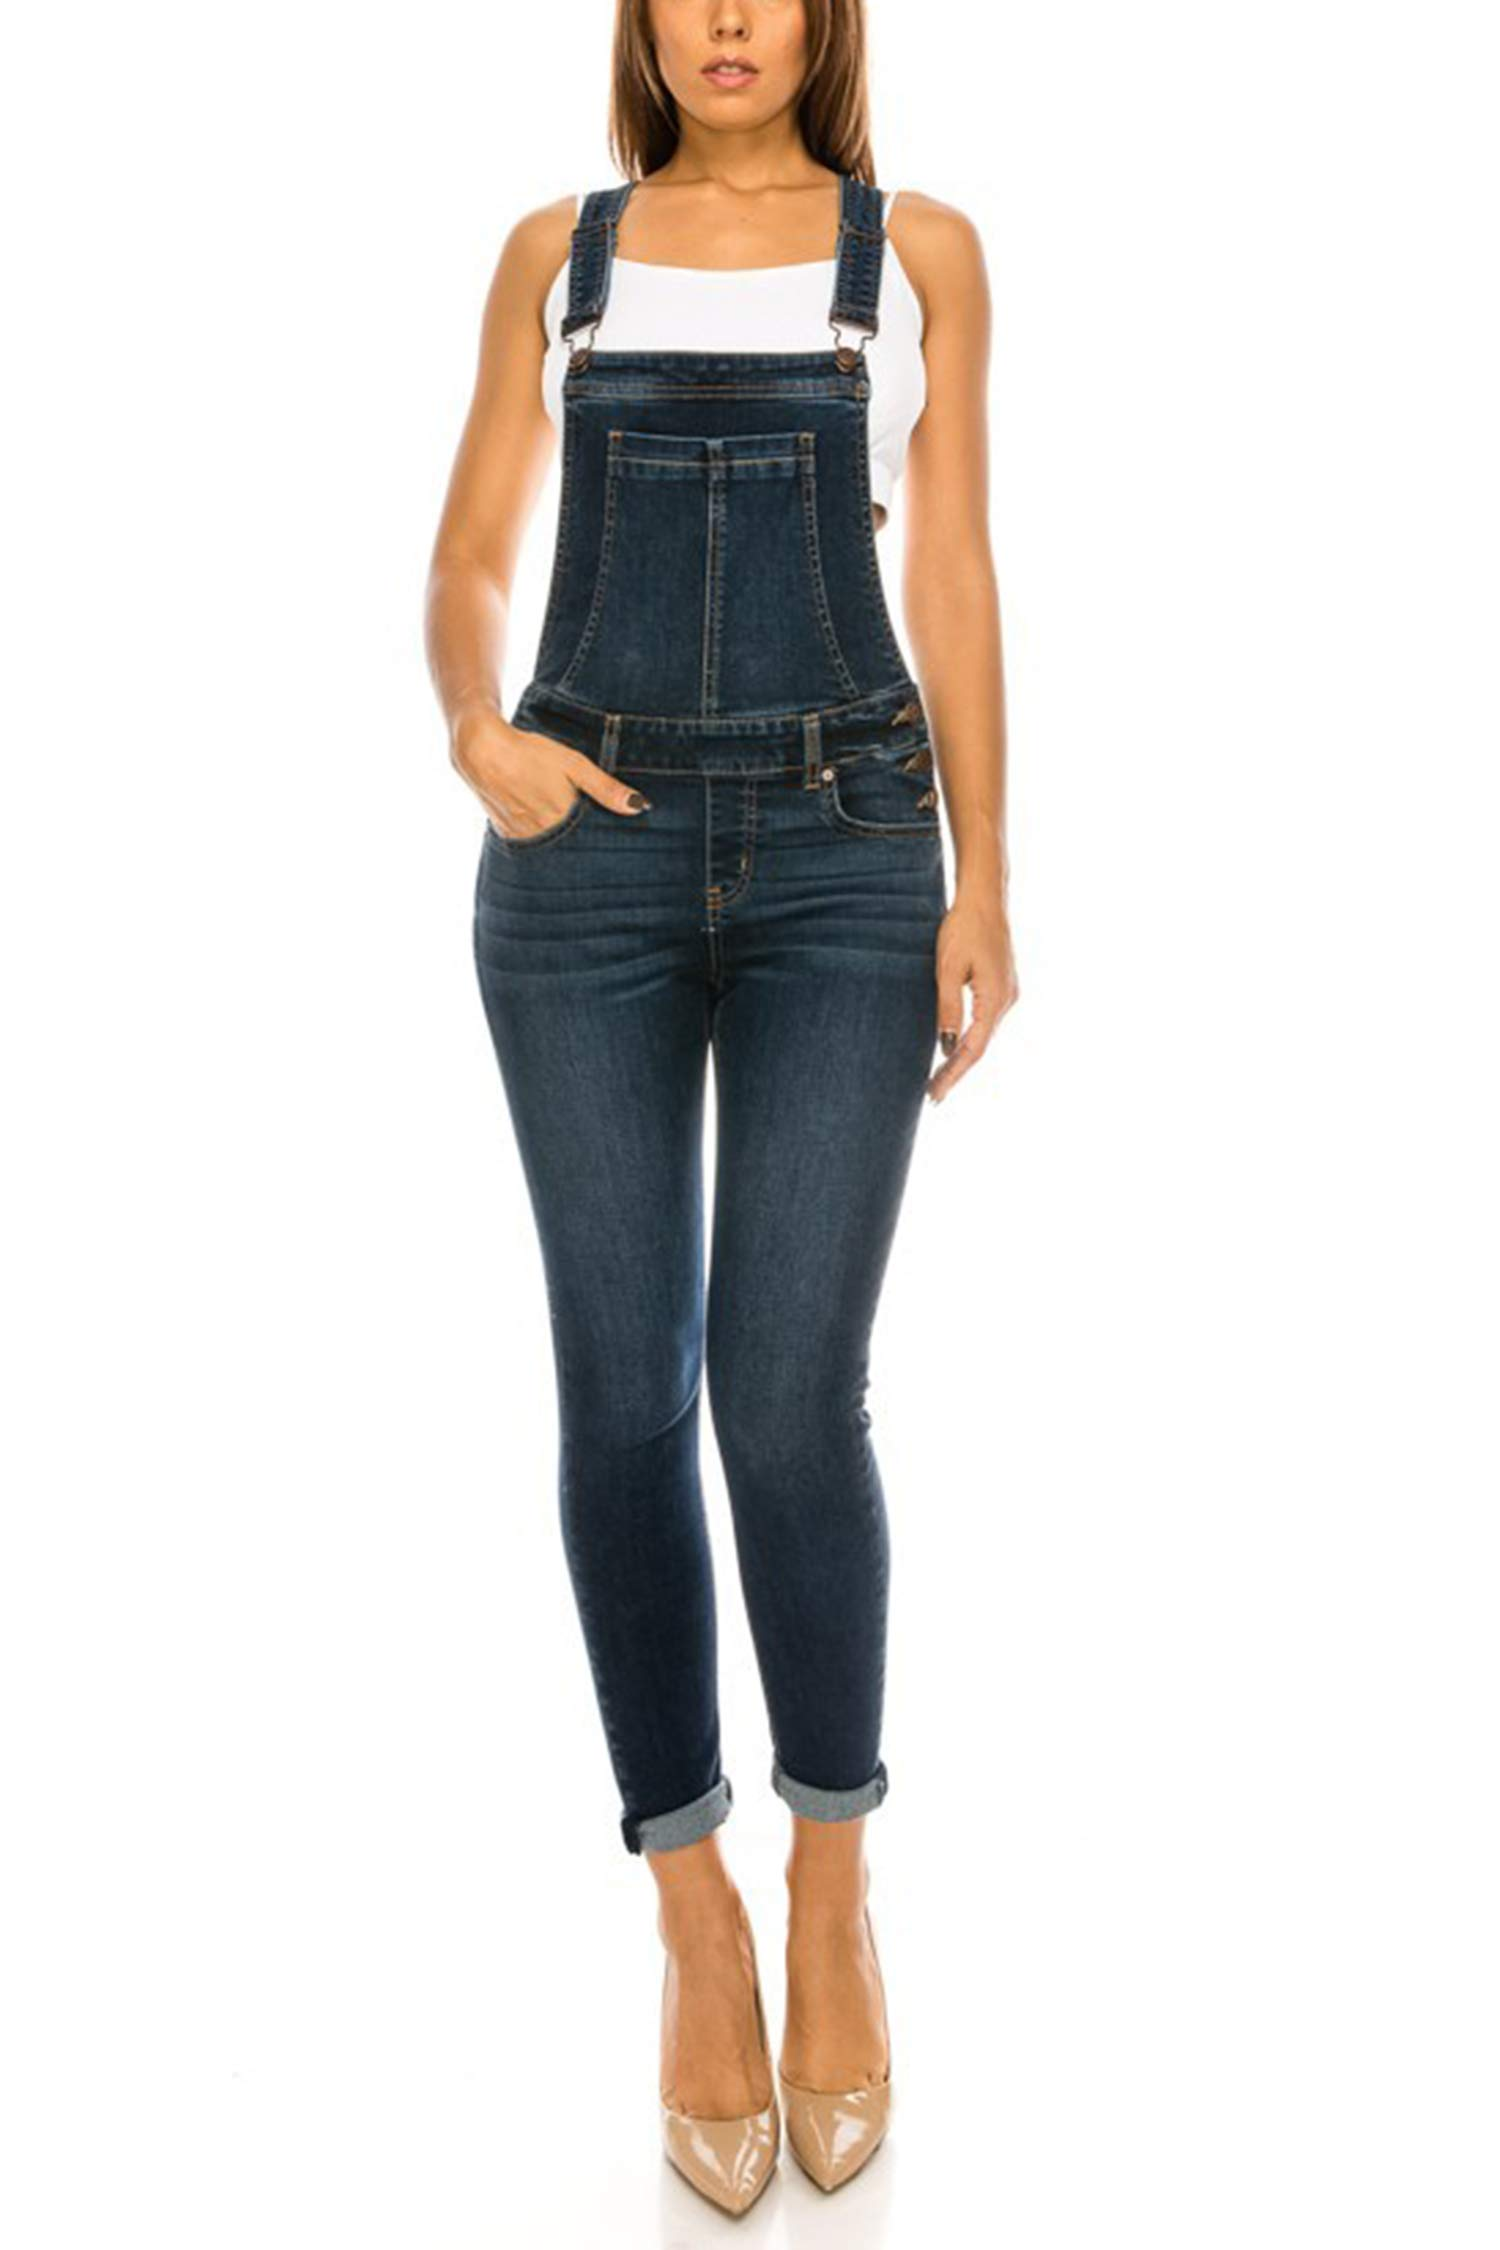 54fa30acbbb Vialumi Women s Juniors Fitted Denim EnJean Overalls product image